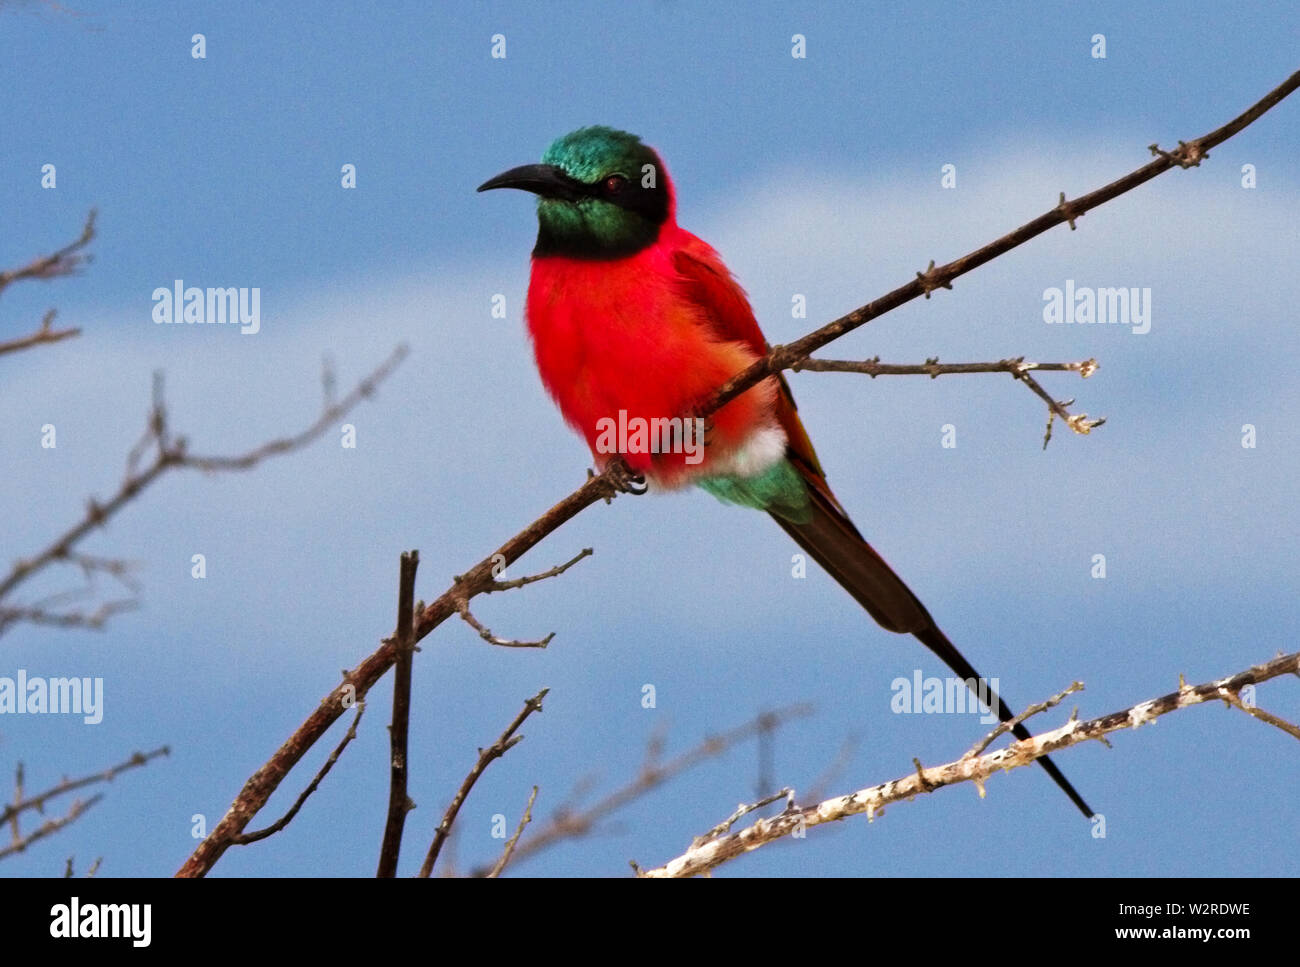 The spectacle of these brightly coloured migratory birds brightens even the dullest day. Flocks of Northen Carmine Bee-Eaters follow the rains - Stock Image